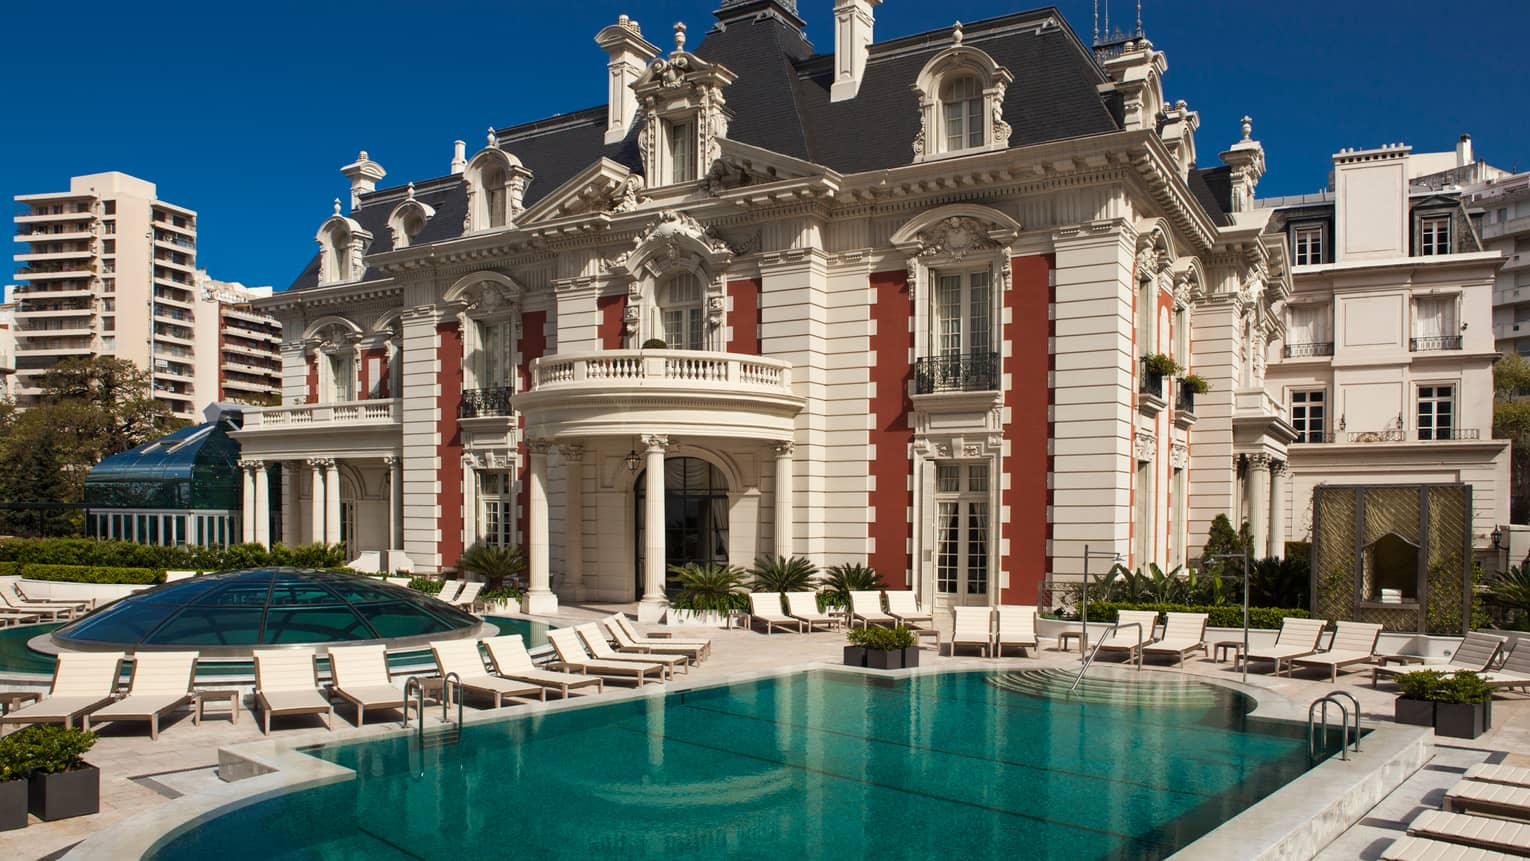 Exterior view of Four Seasons Buenos Aires hotel in historic white mansion with swimming pool